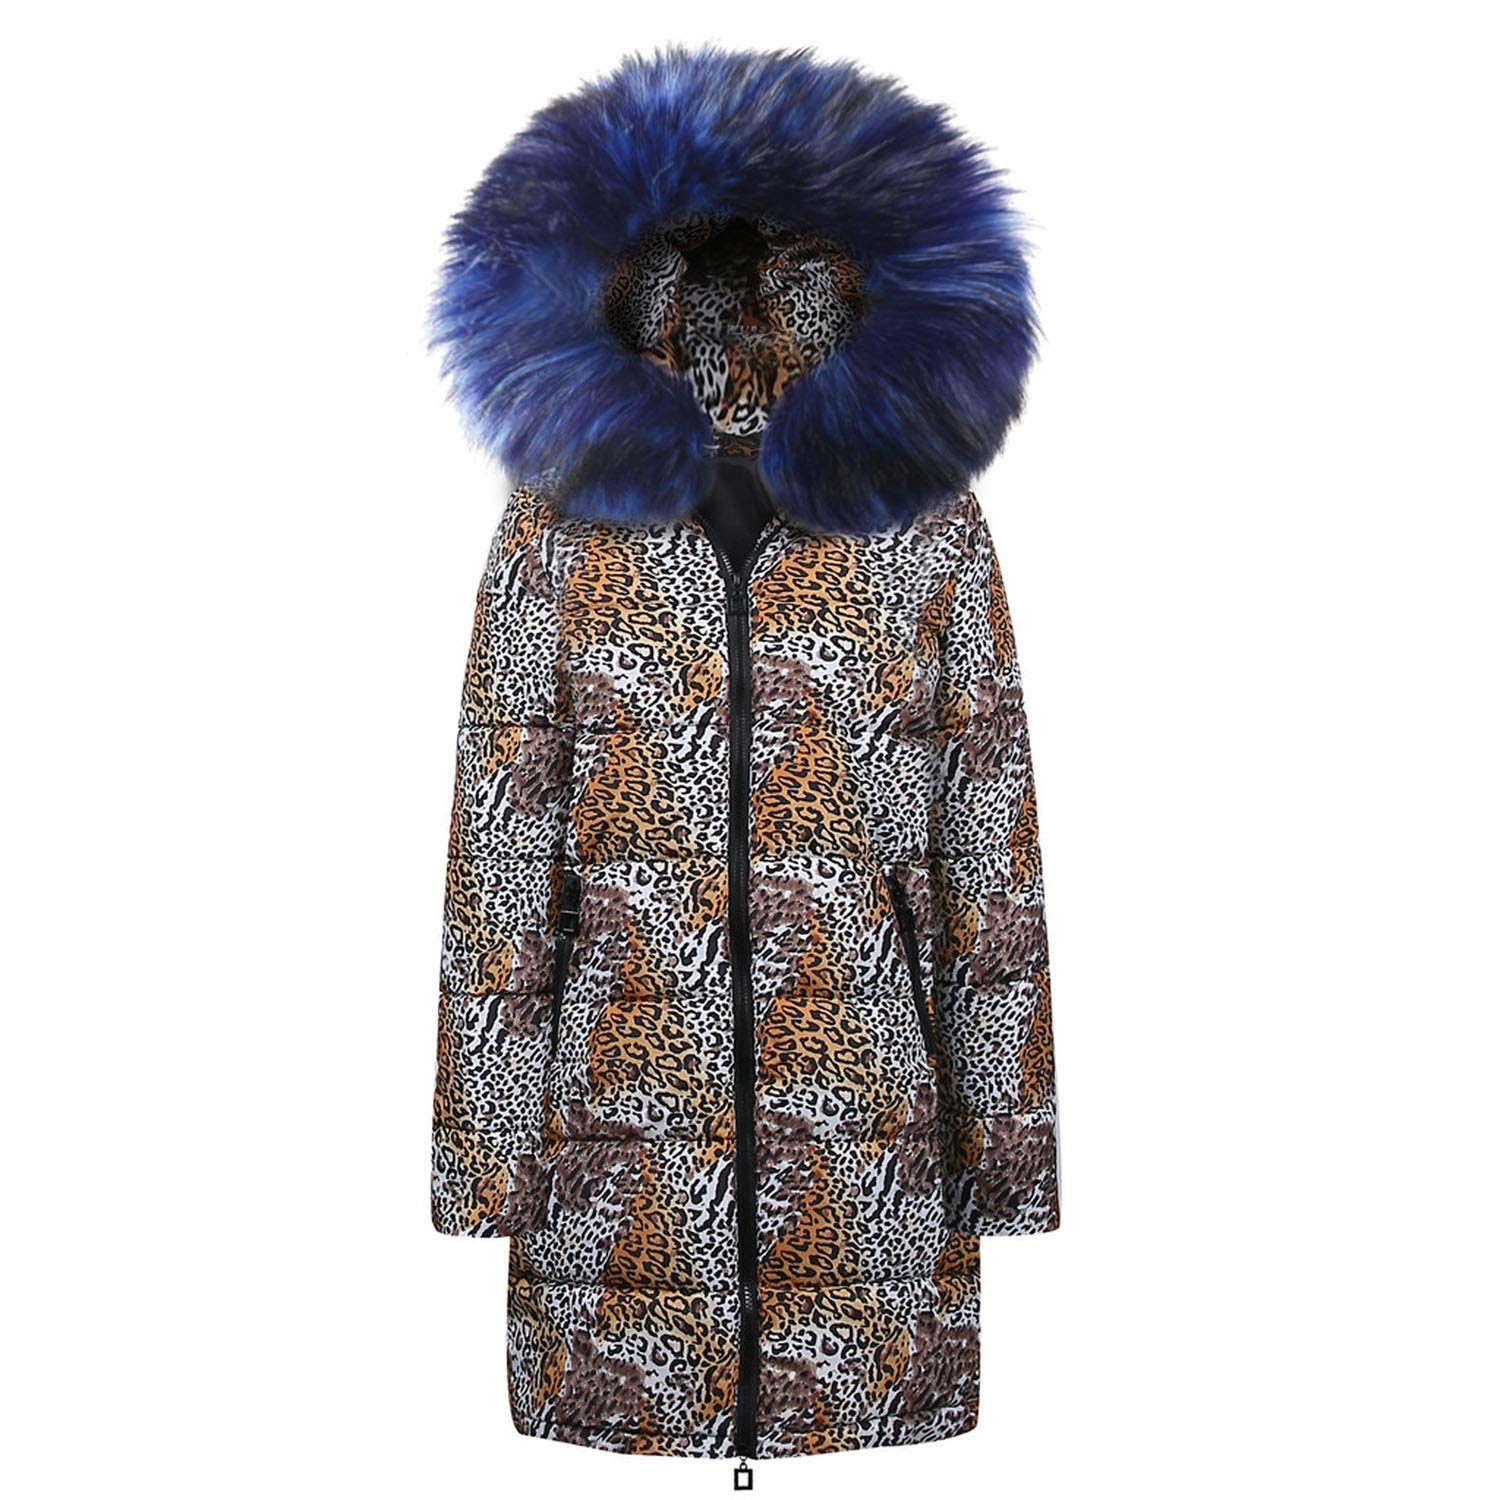 bluee I'll NEVER BE HER Womens Winter Long Down Cotton Leopard Print Hooded Coat et Outwear Long Sleeves